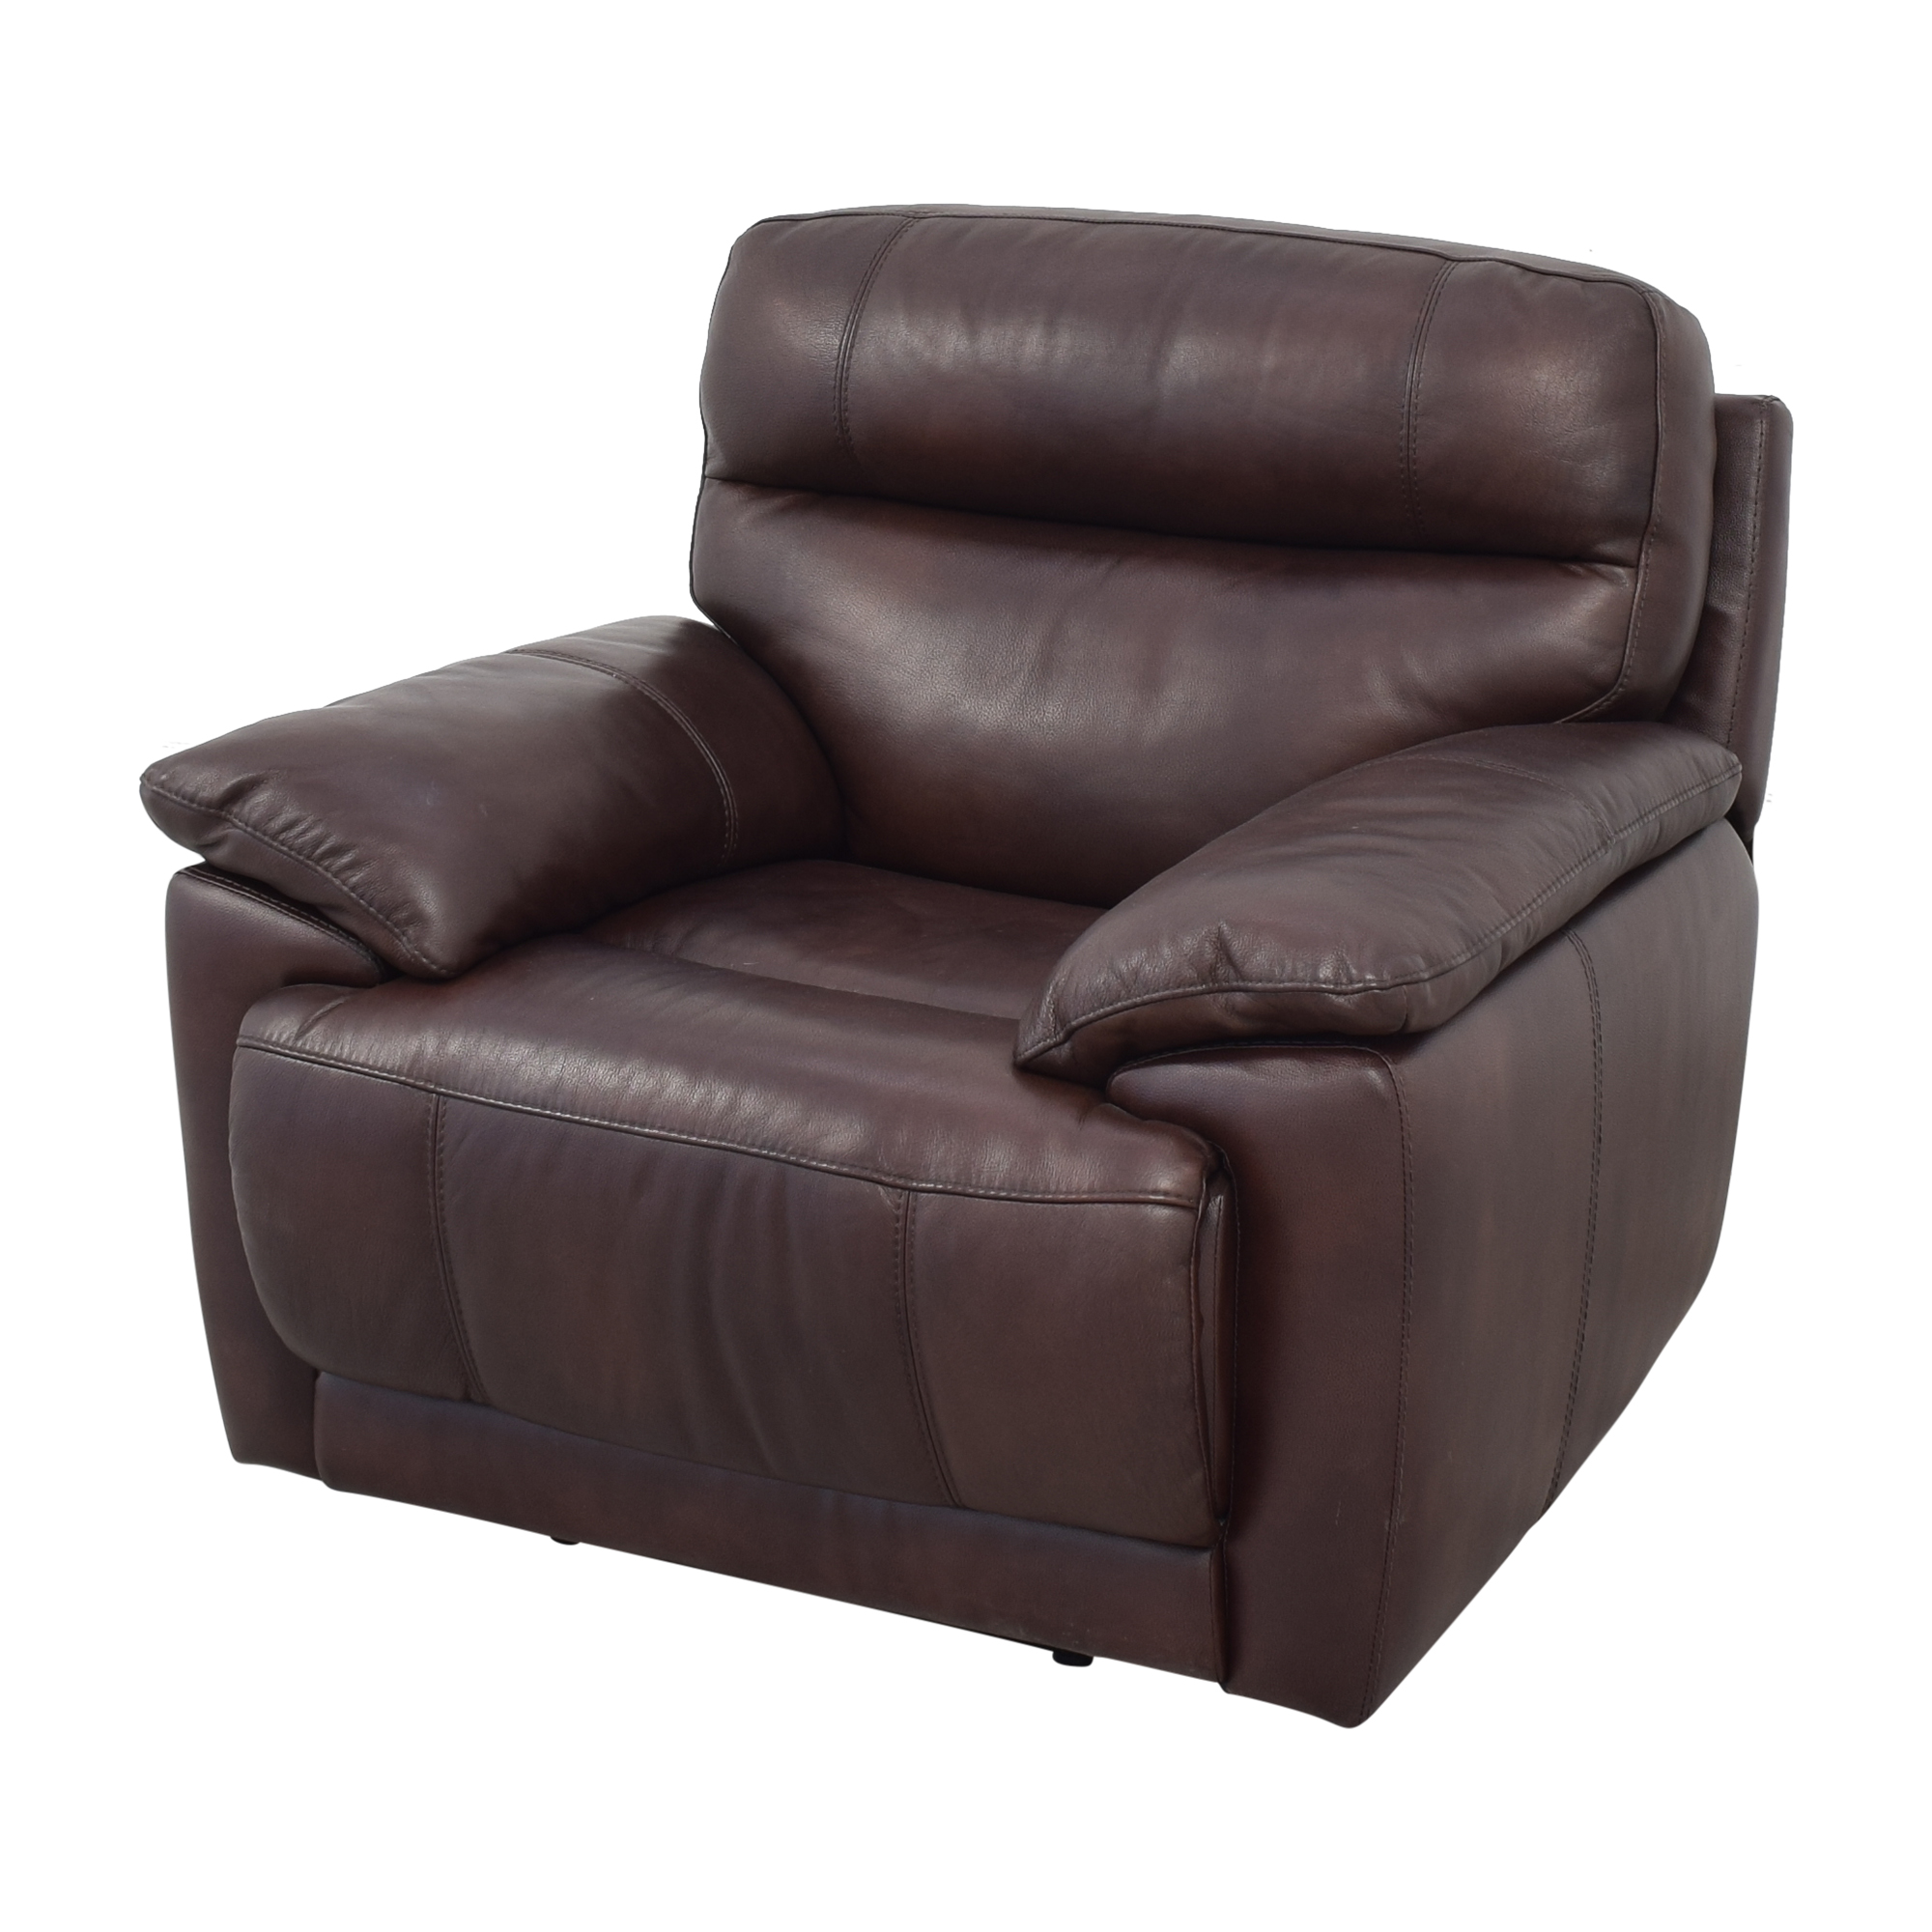 shop Raymour & Flanigan Raymour & Flanigan Power Recliner online